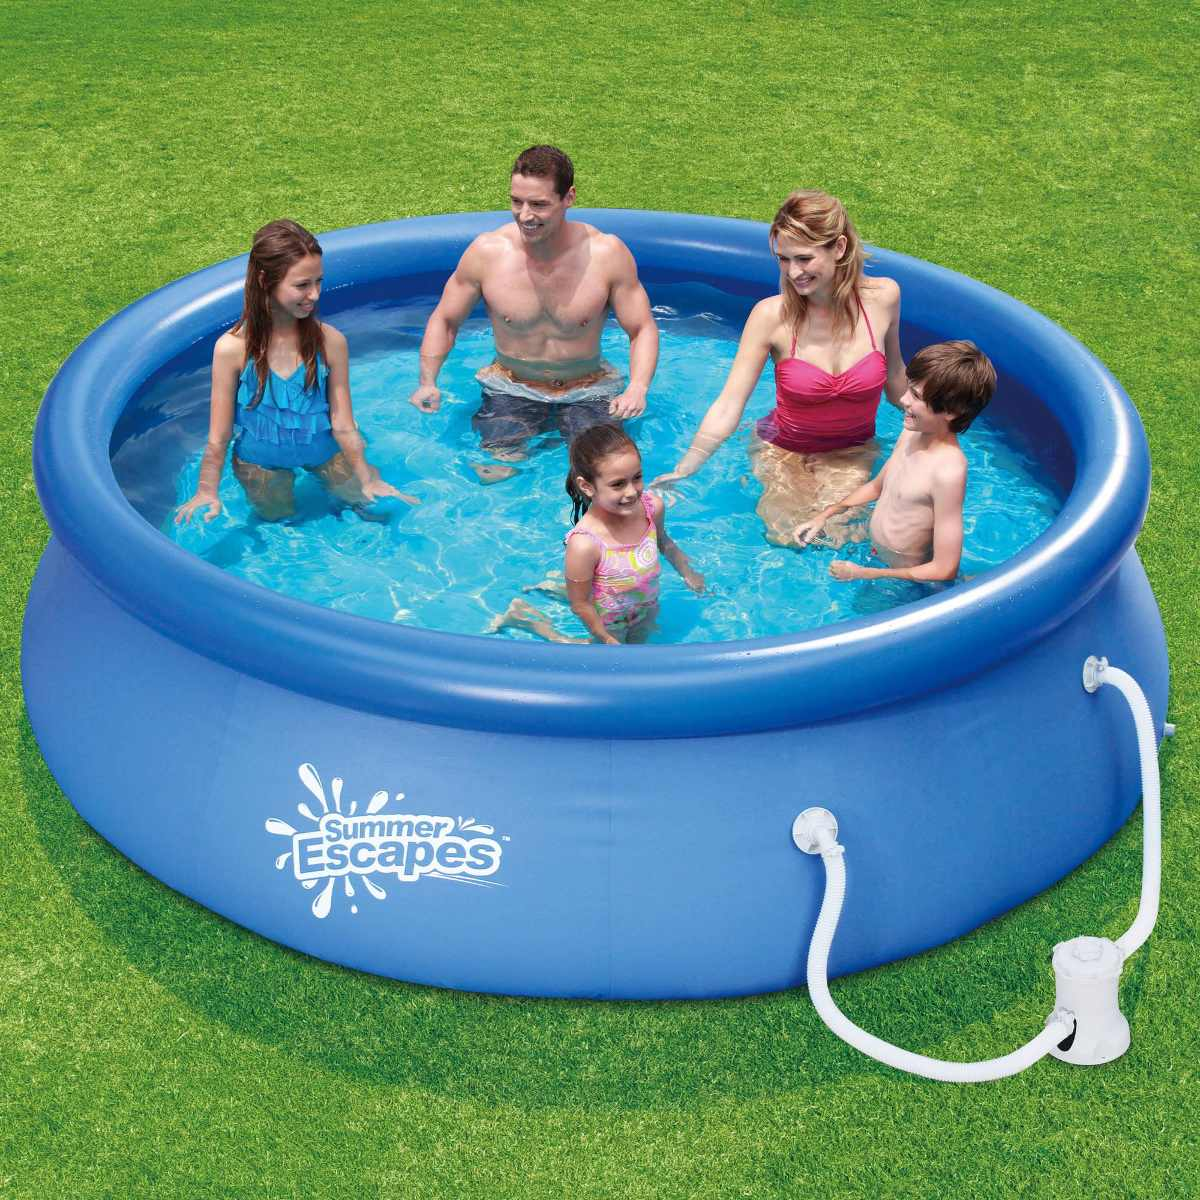 Alberca inflable 3 mts x 76cm bomba filtro summer escapes 1 en mercado libre for Above ground swimming pools for sale